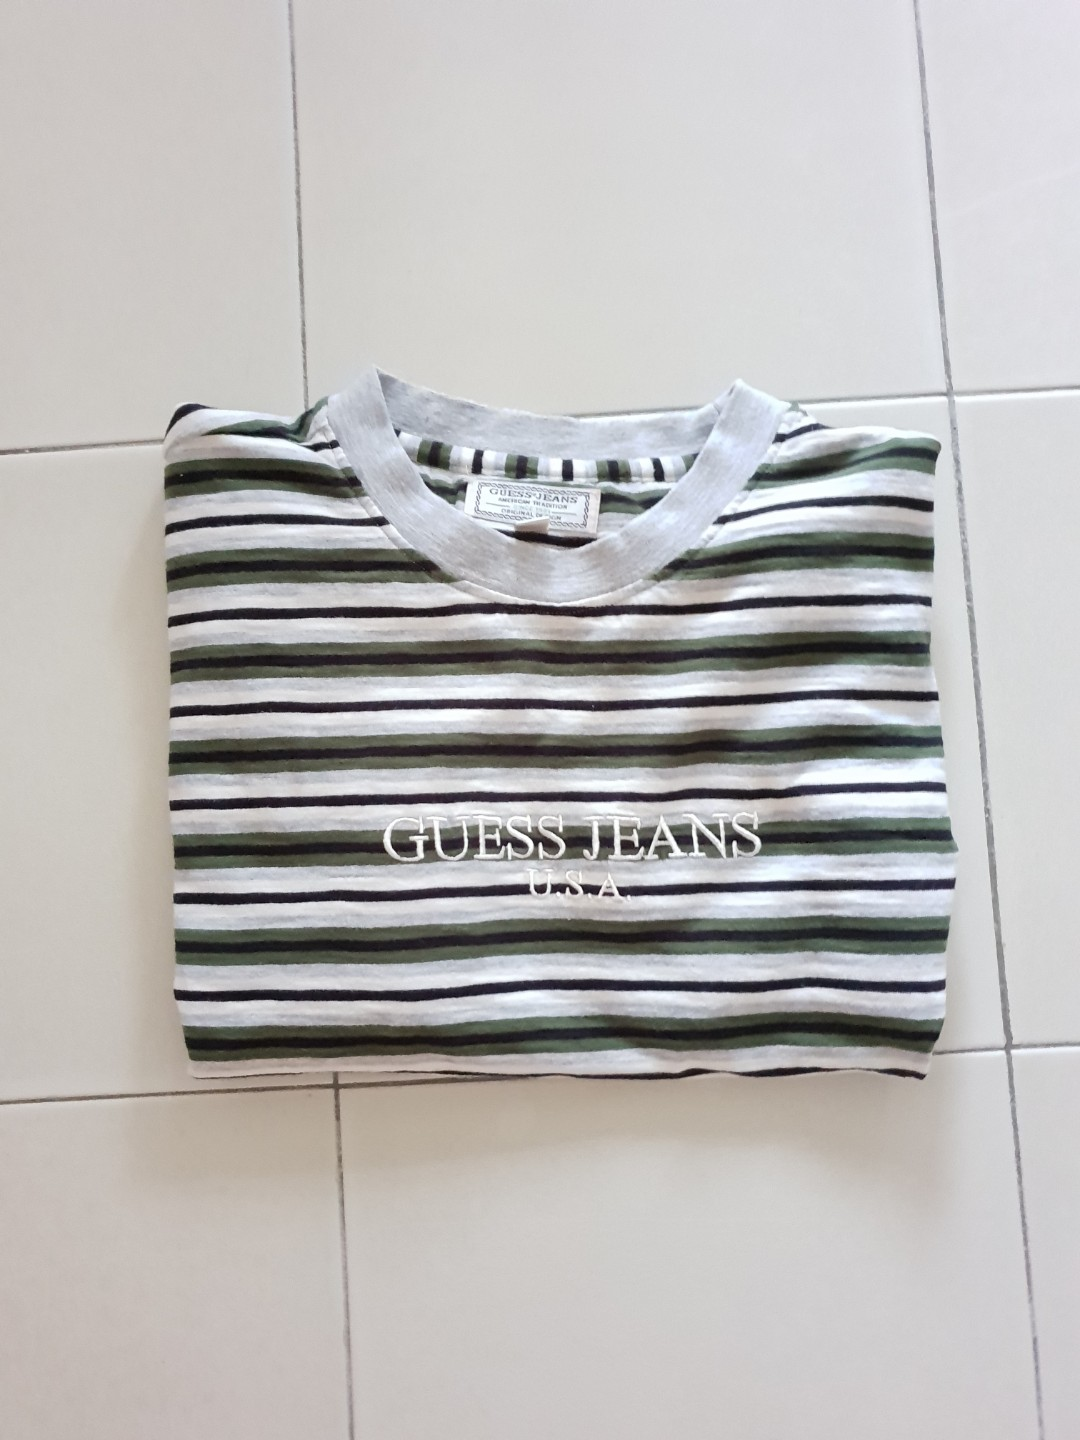 309e722685 Guess Jeans Striped Shirt